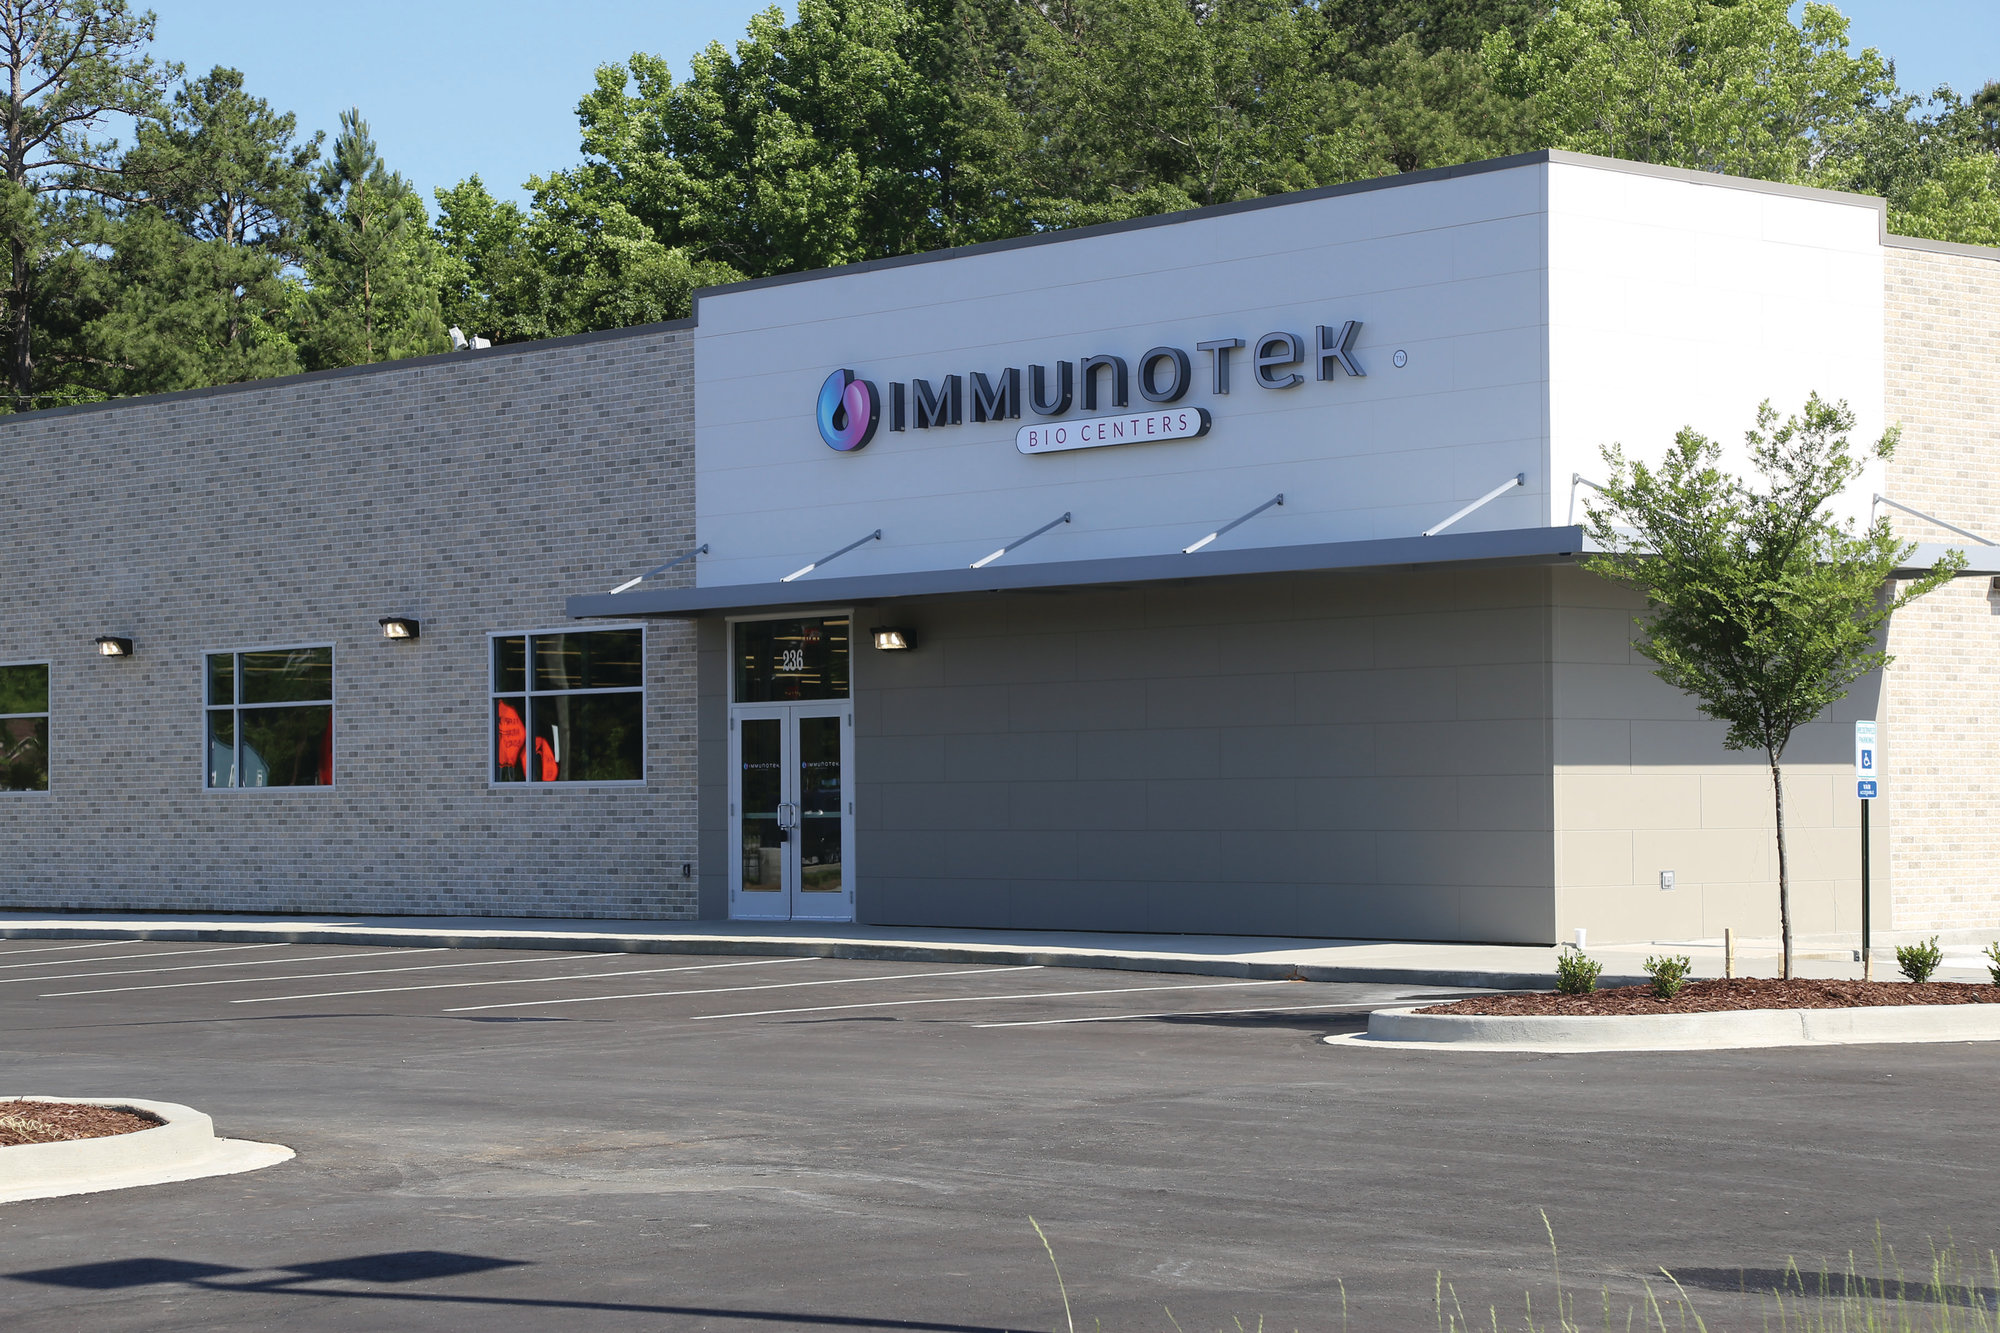 BRUCE MILLS / THE SUMTER ITEM  Immunotek Bio Centers' new facility at 236 S. Pike is about 12,000 square feet and is scheduled to open June 19.